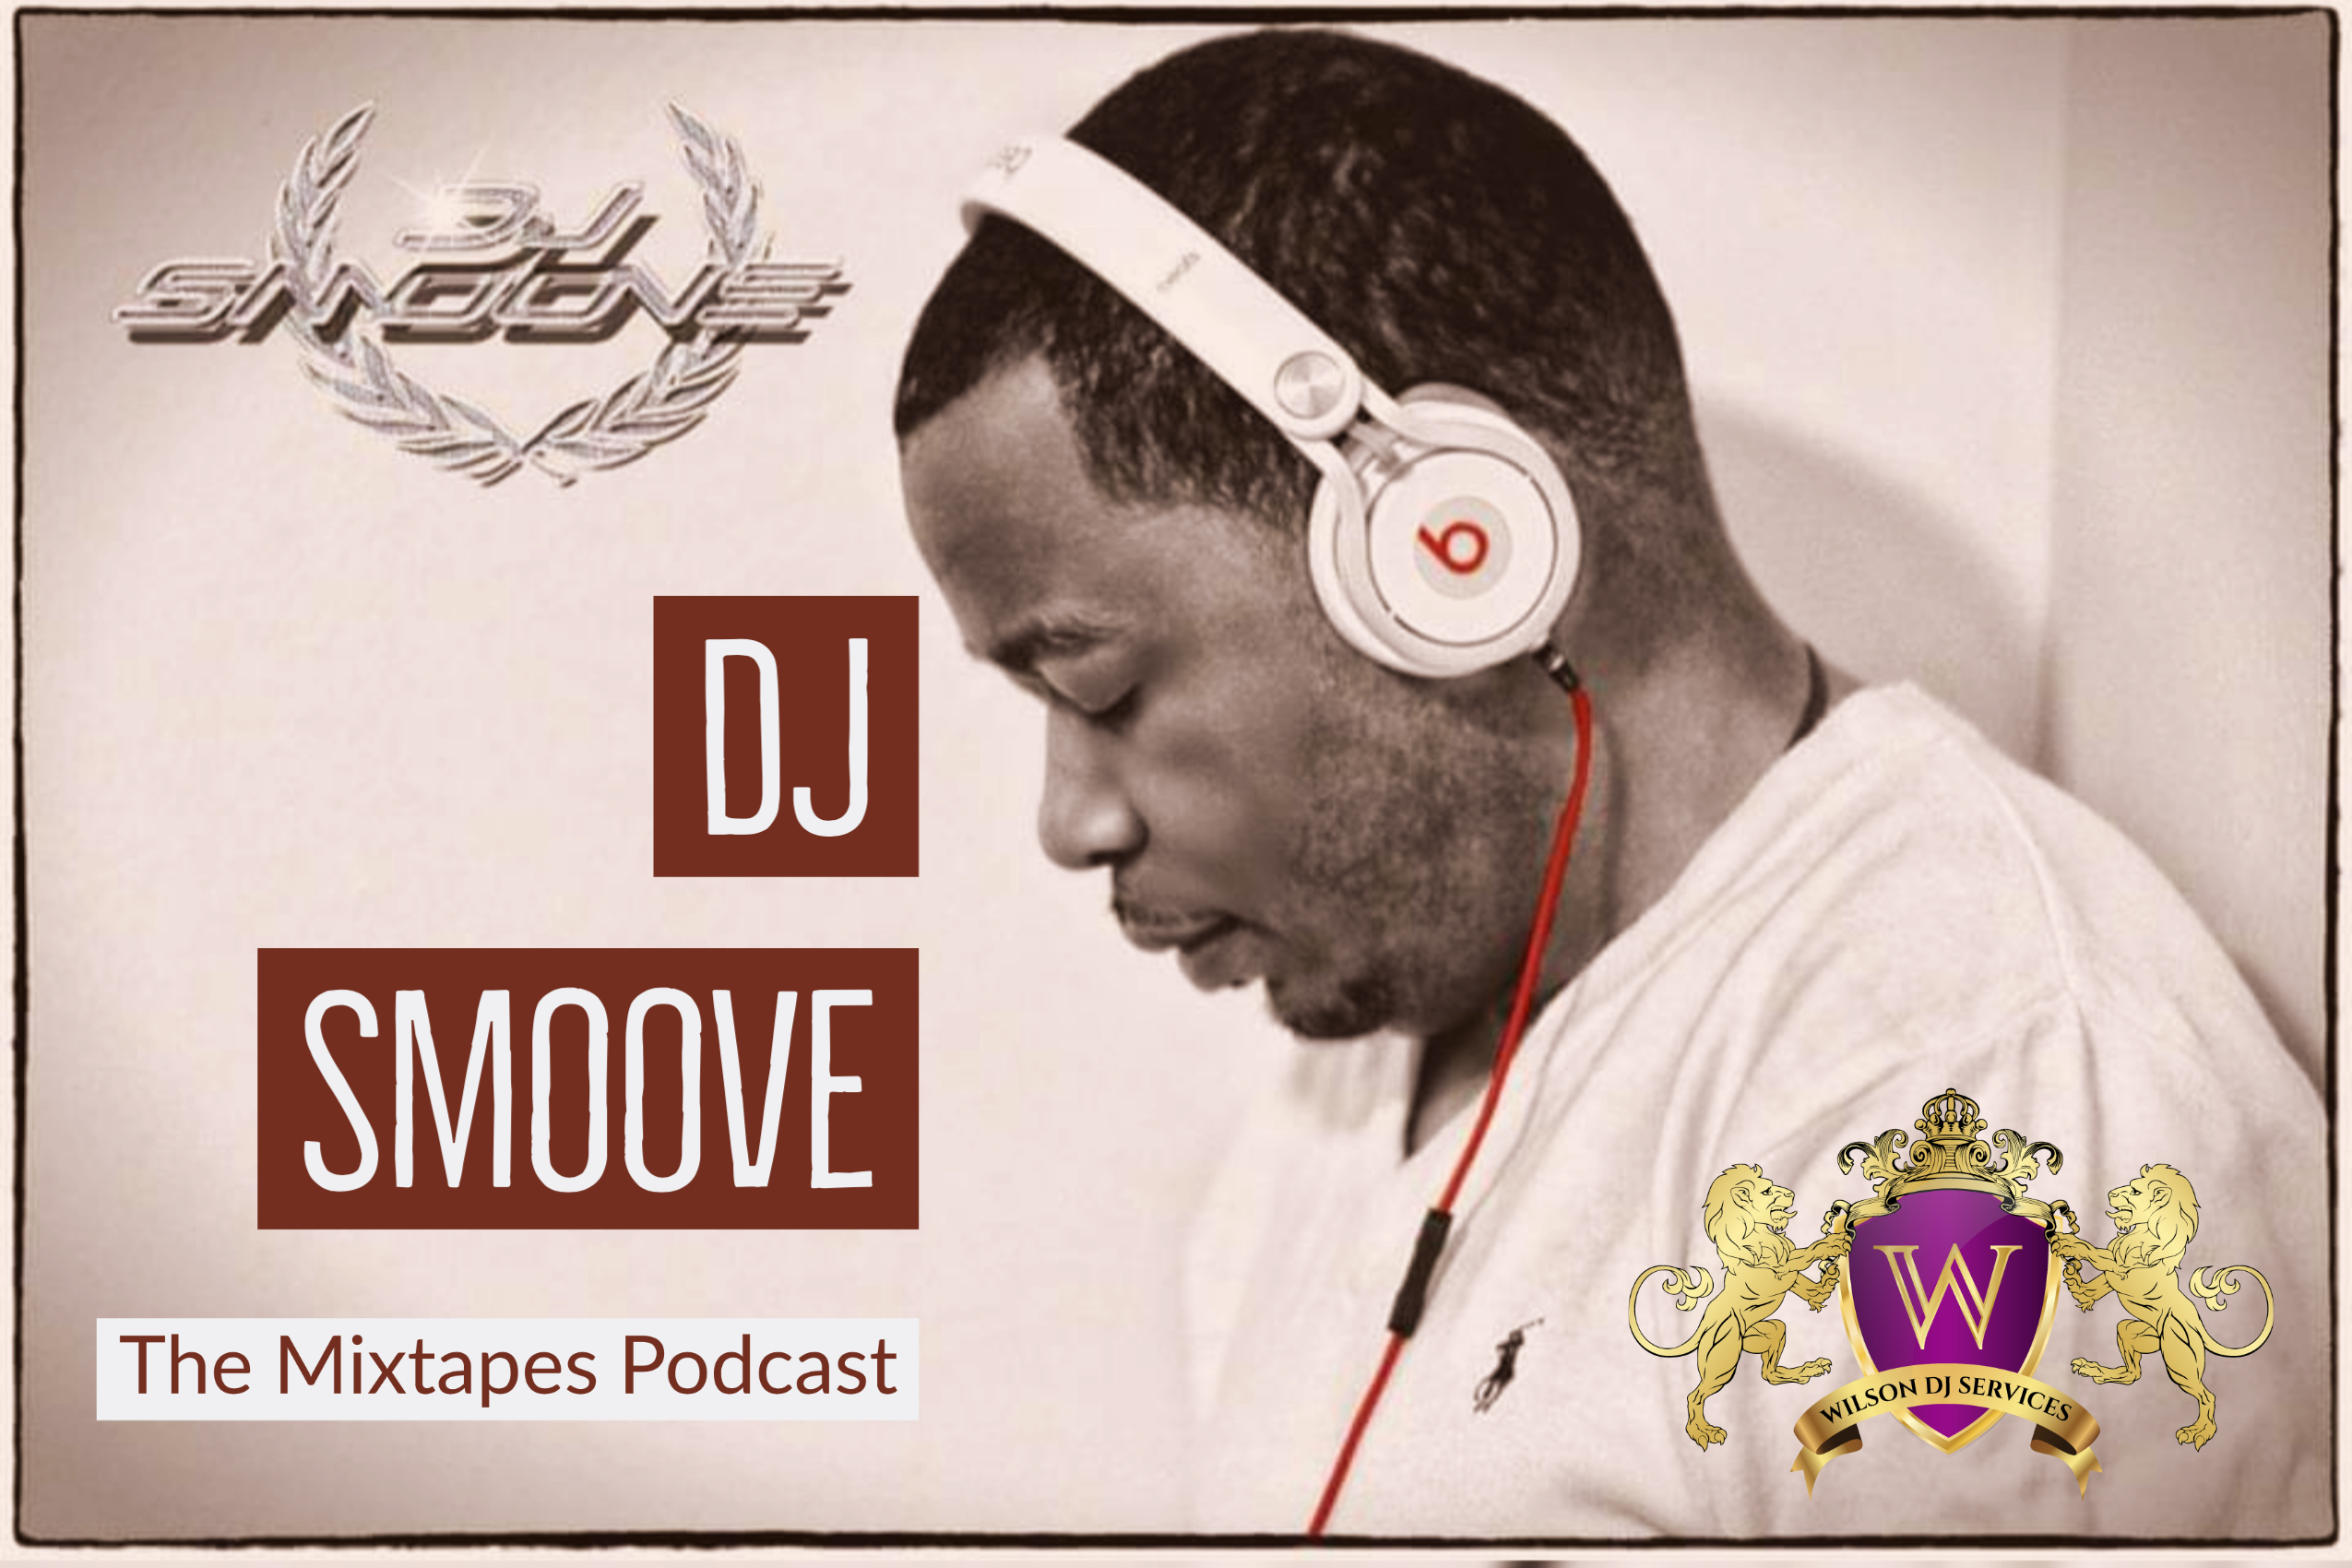 DJ Smoove Soul Food Mixtape